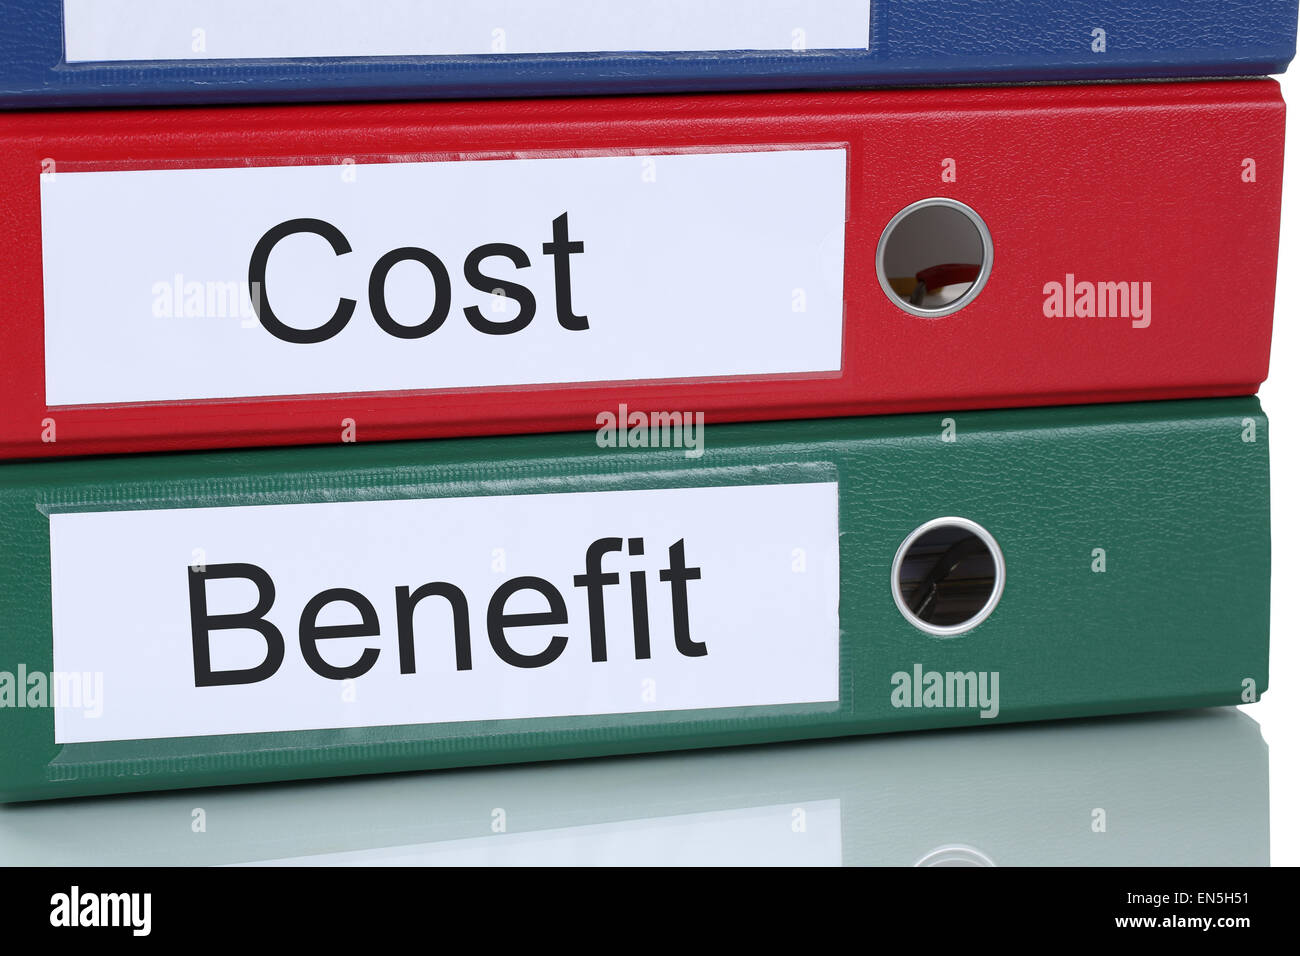 Cost benefit calculation analysis expenses finances in company business concept - Stock Image